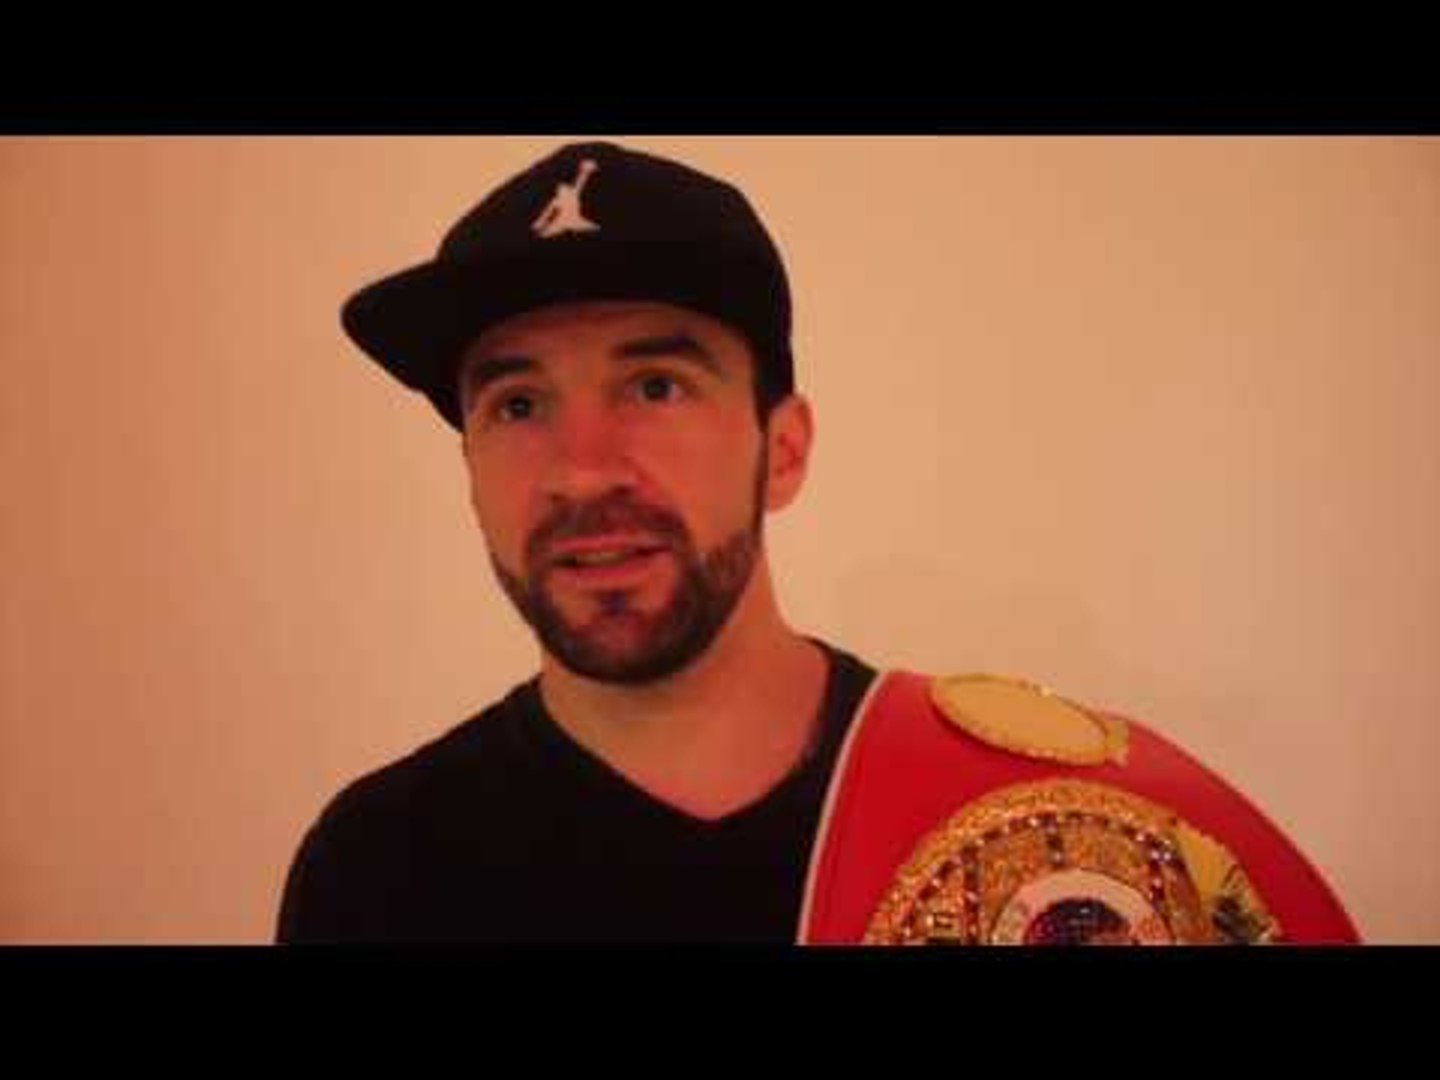 LEE HASKINS - 'THESE FIGHT ARE ABOUT PUTTING MONEY IN THE BANK FOR MY KIDS I DONT CARE ABOUT LE